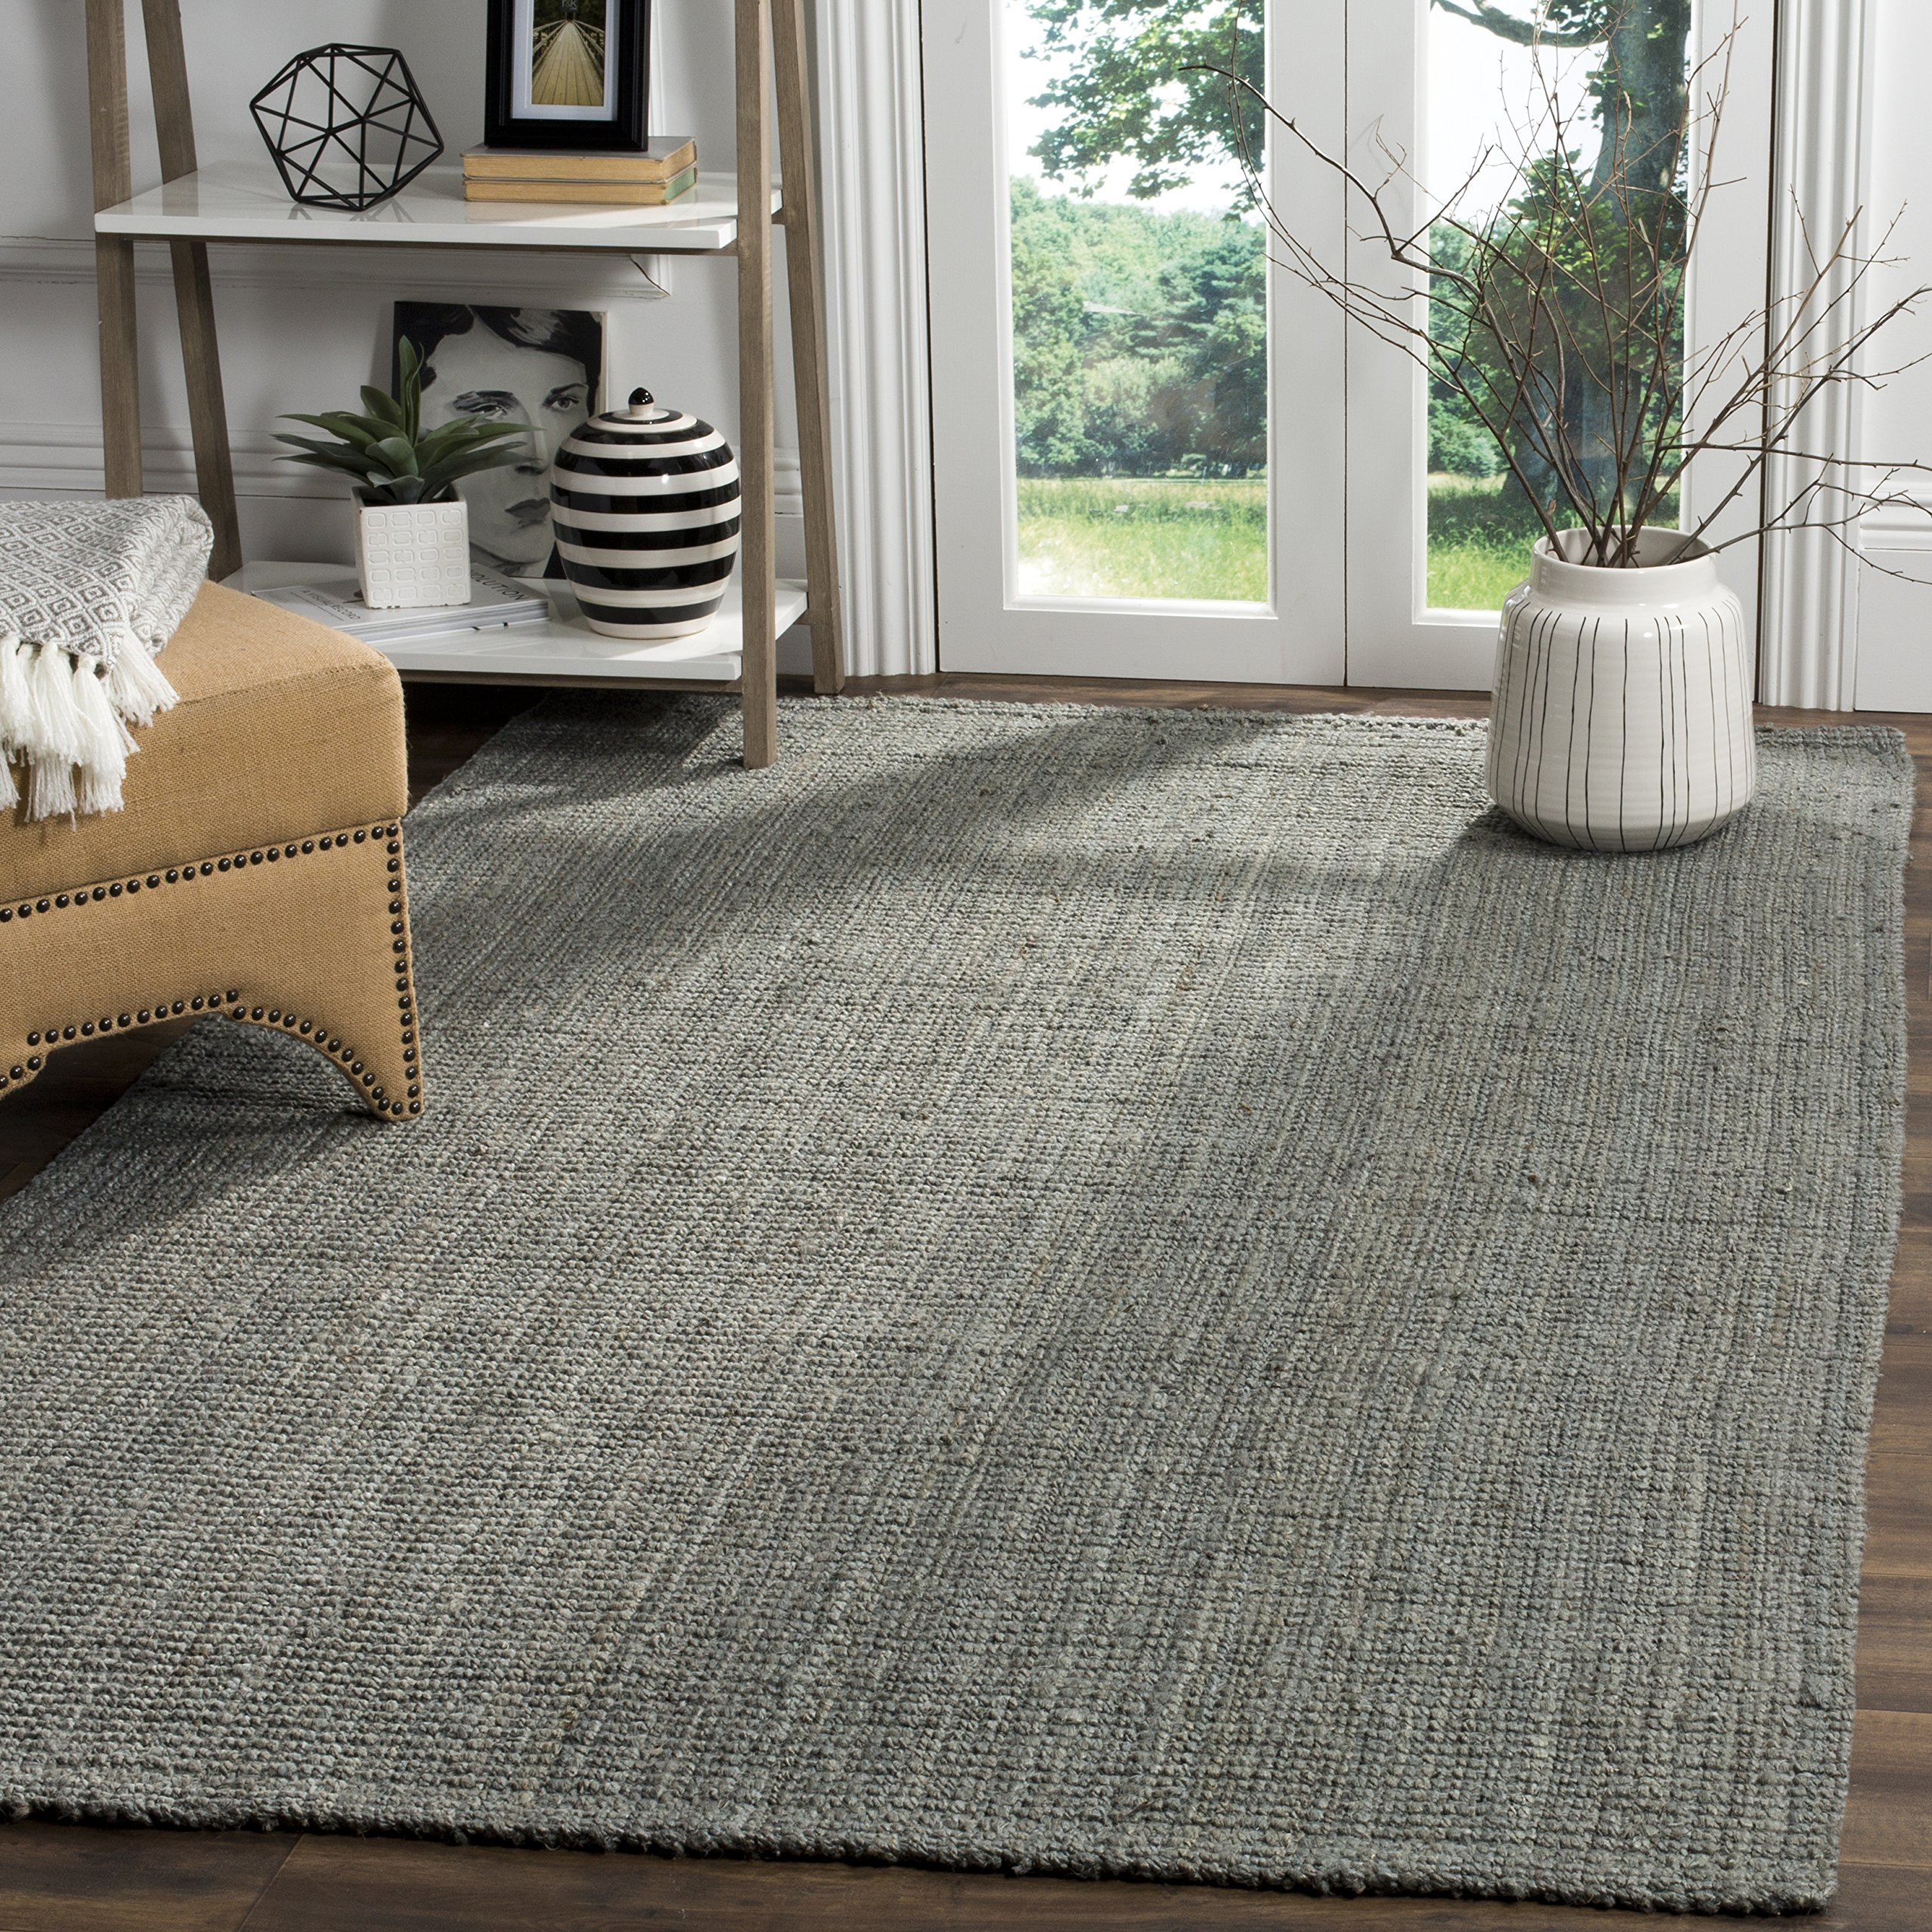 Safavieh Natural Fiber Collection NF730B Hand Woven Grey Jute Area Rug (6' x 9') by Safavieh